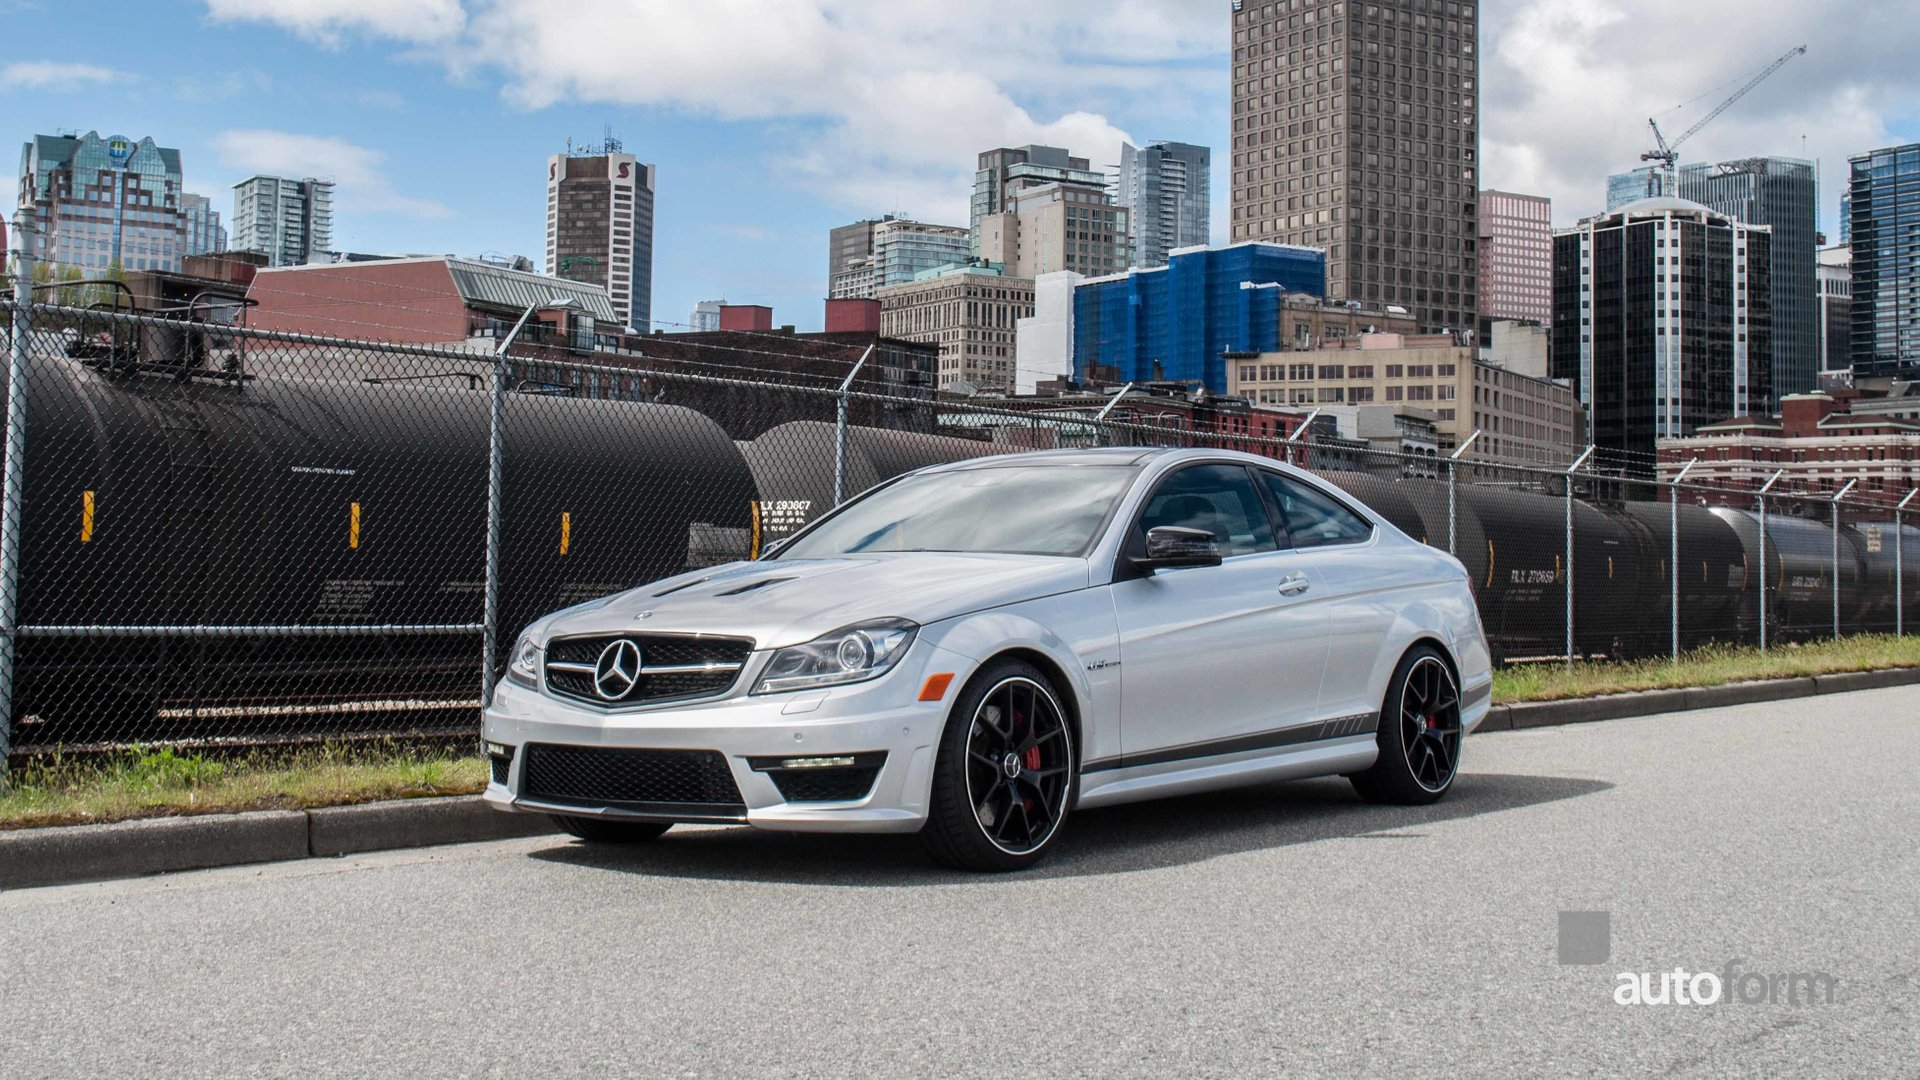 2014 Mercedes-Benz C63 AMG 507 edition